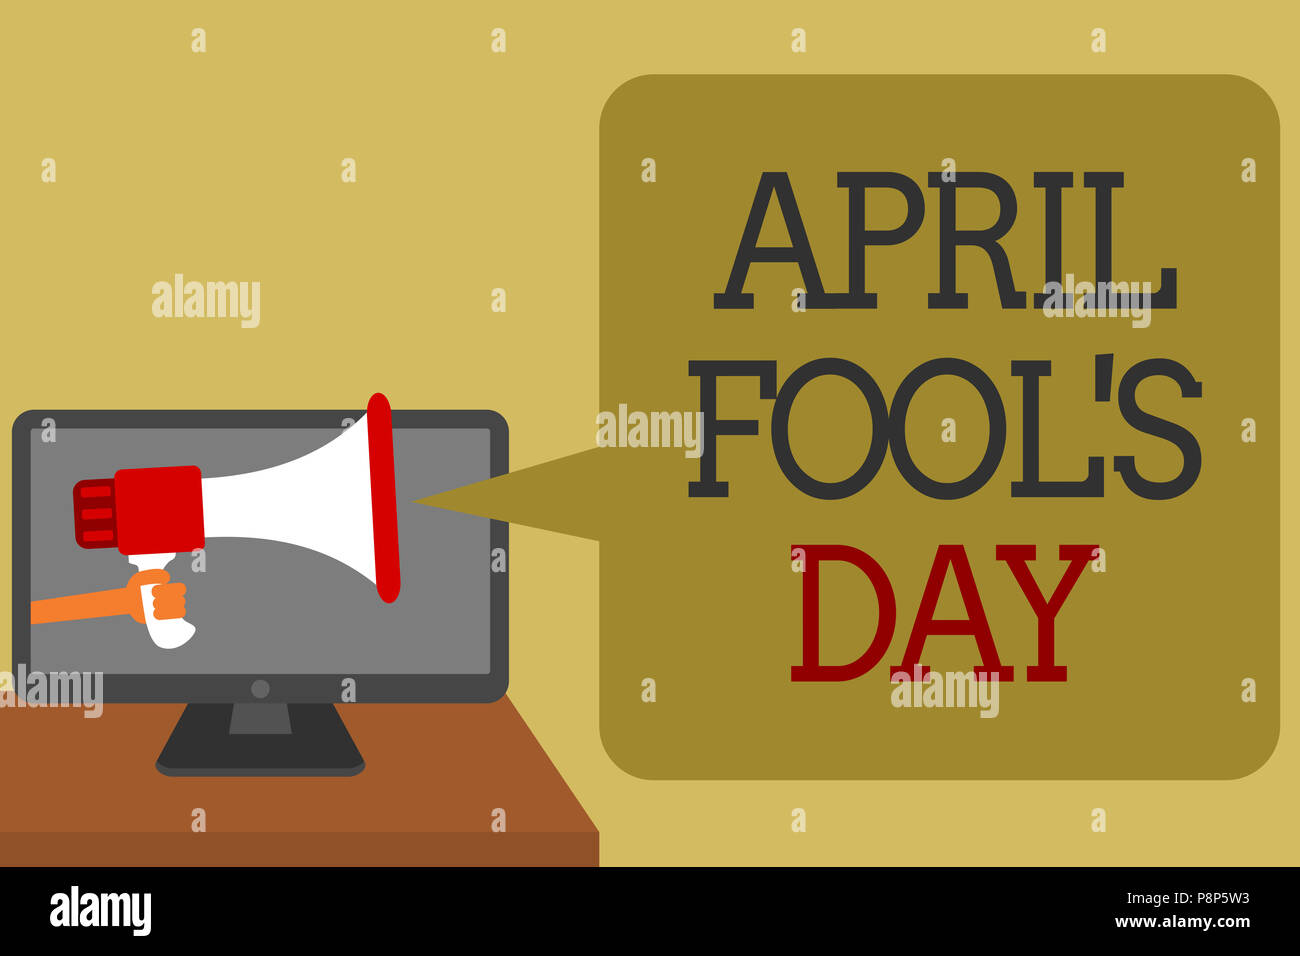 Text sign showing April Fool s is Day. Conceptual photo Practical jokes humor pranks Celebration funny foolish Social media network convey lines messa - Stock Image